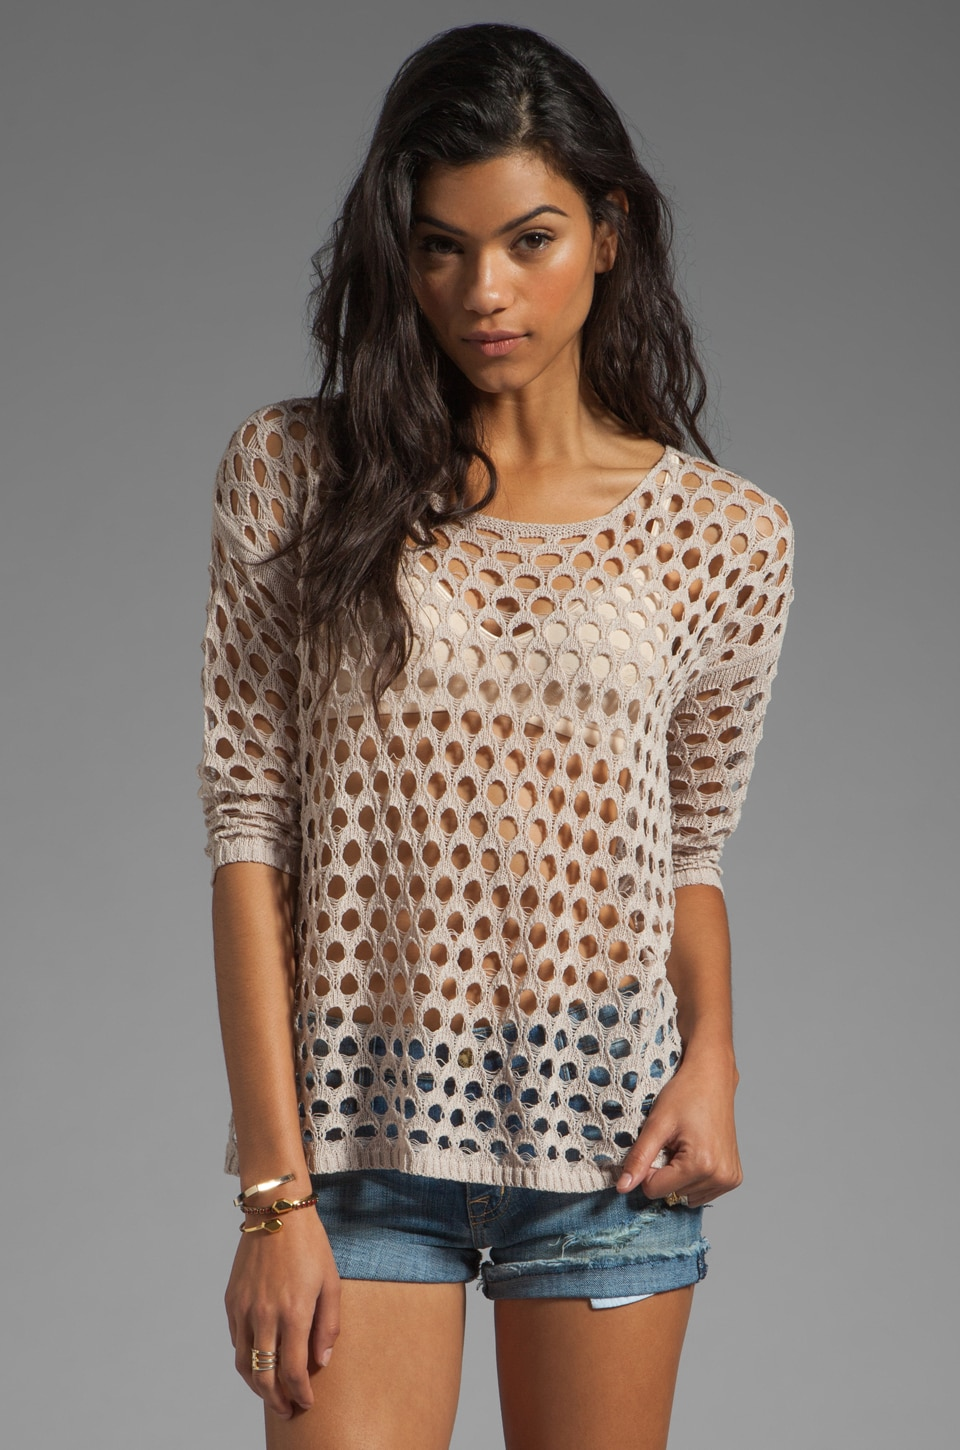 HEARTLOOM Carina Sweater in Dune